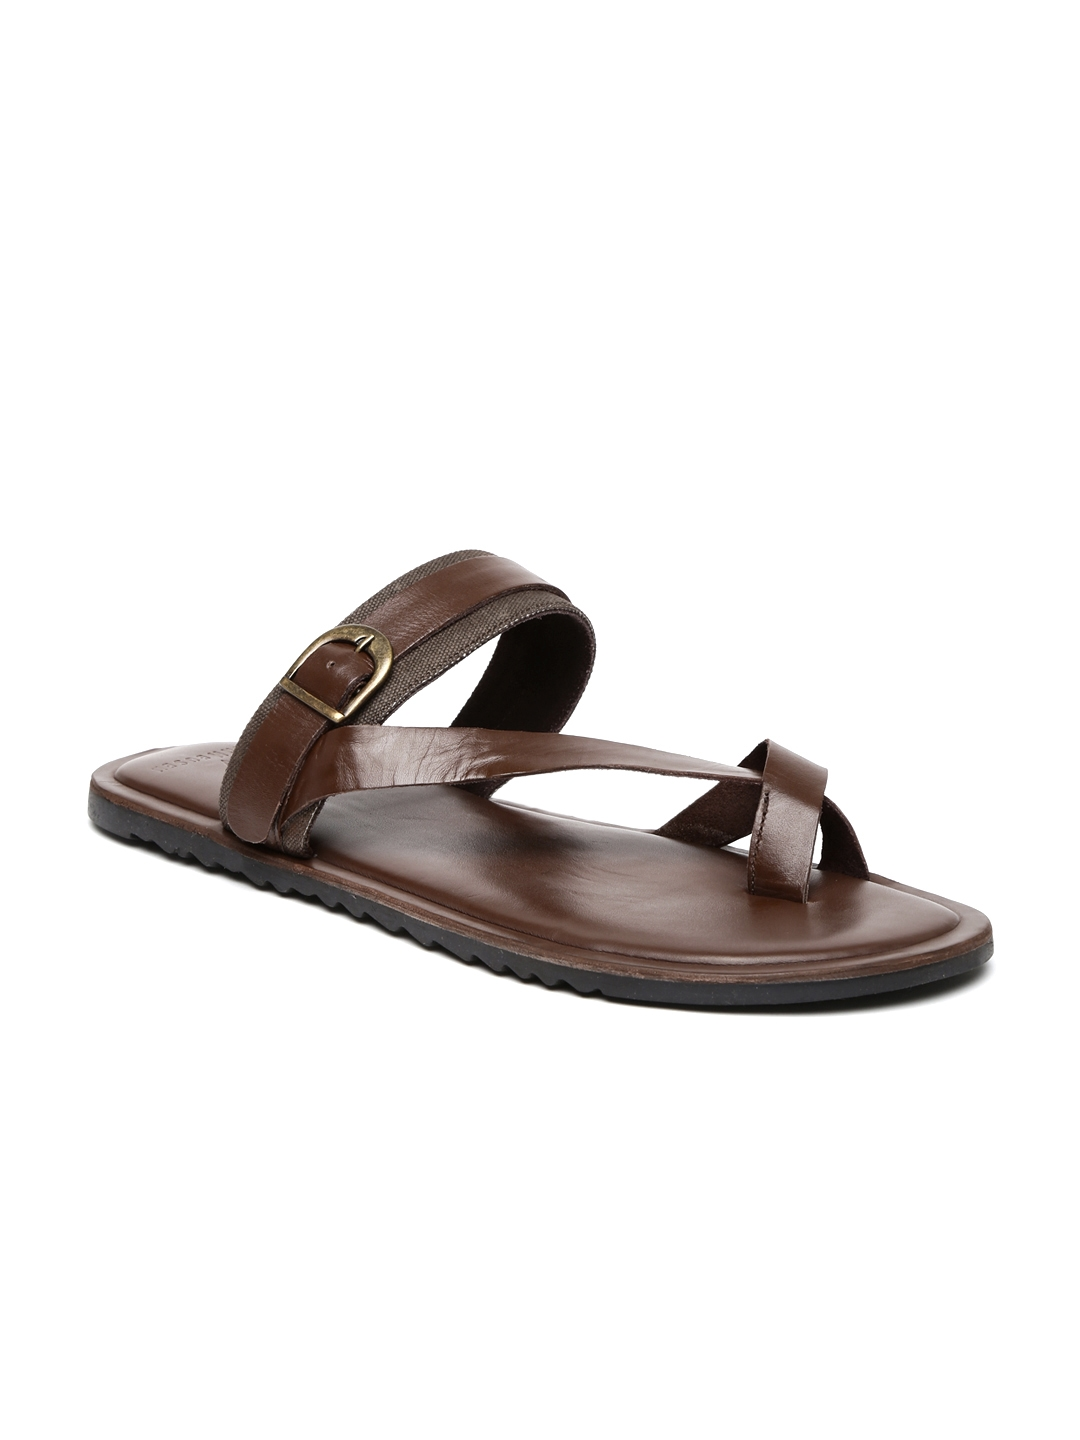 Buy Van Heusen Men Brown Leather Sandals - Sandals for Men 1378679 ... dfd53e12b